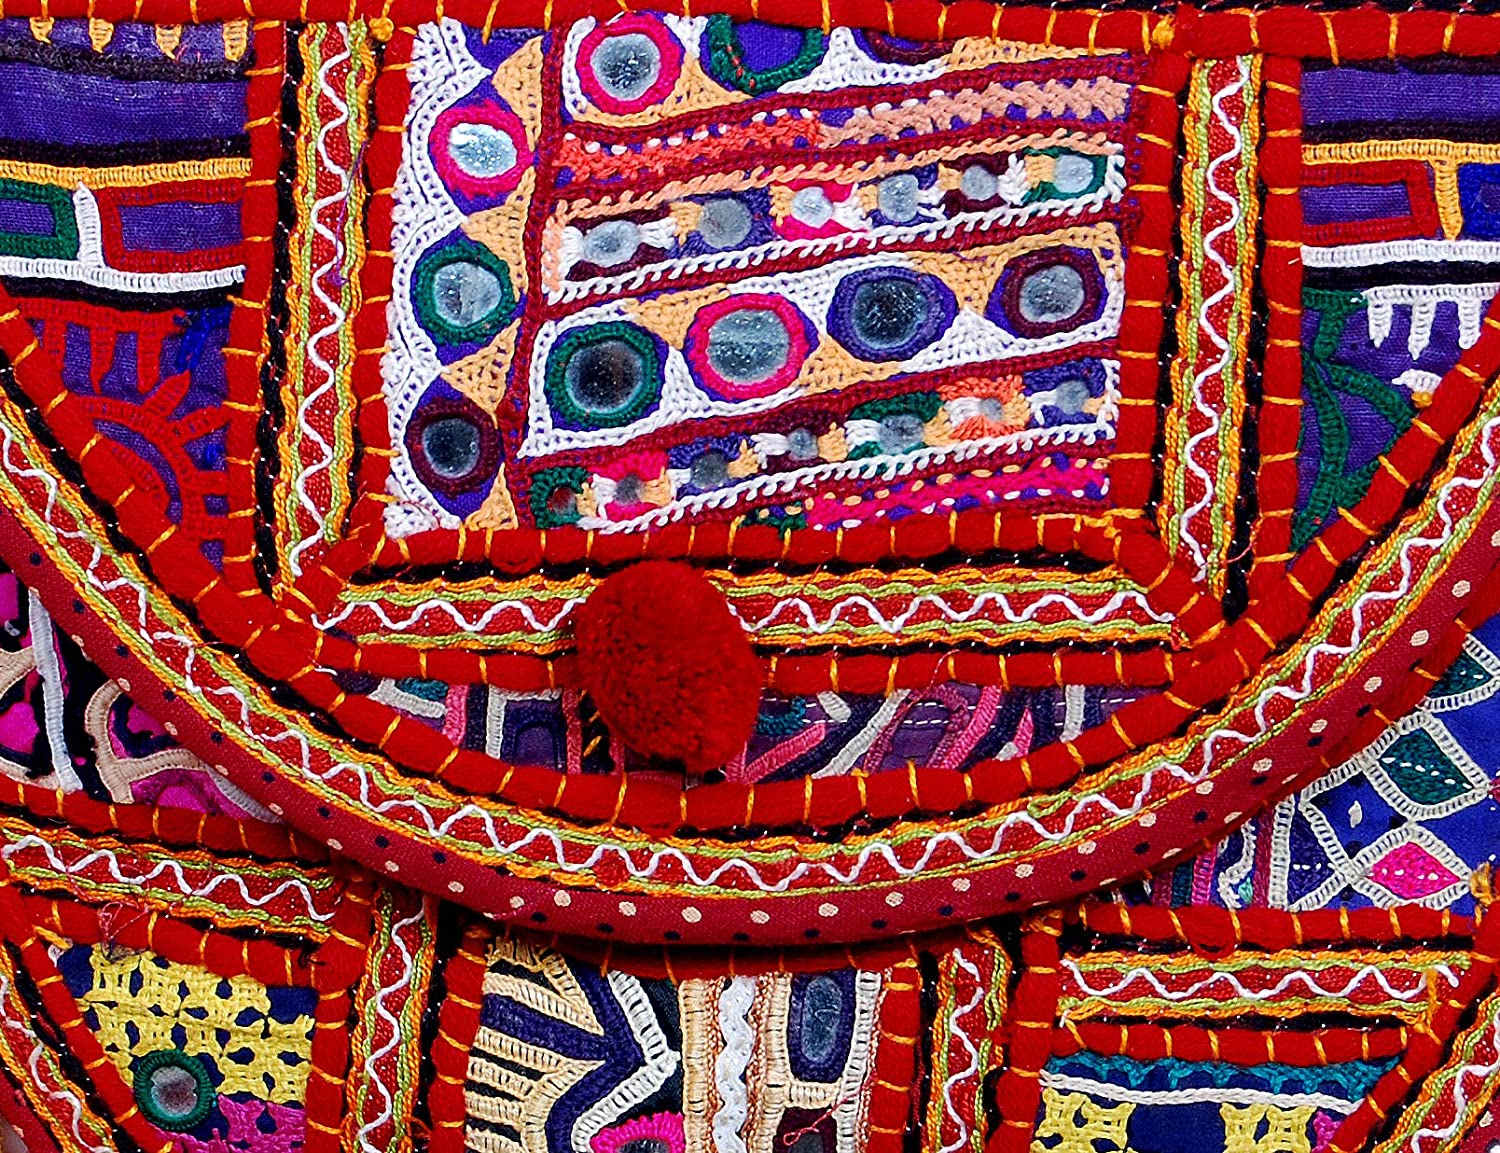 Handmade Vintage Ethnic Embroidery Elephant Design with Mirror Work Trendy Clutch Bag for Women Multicolor